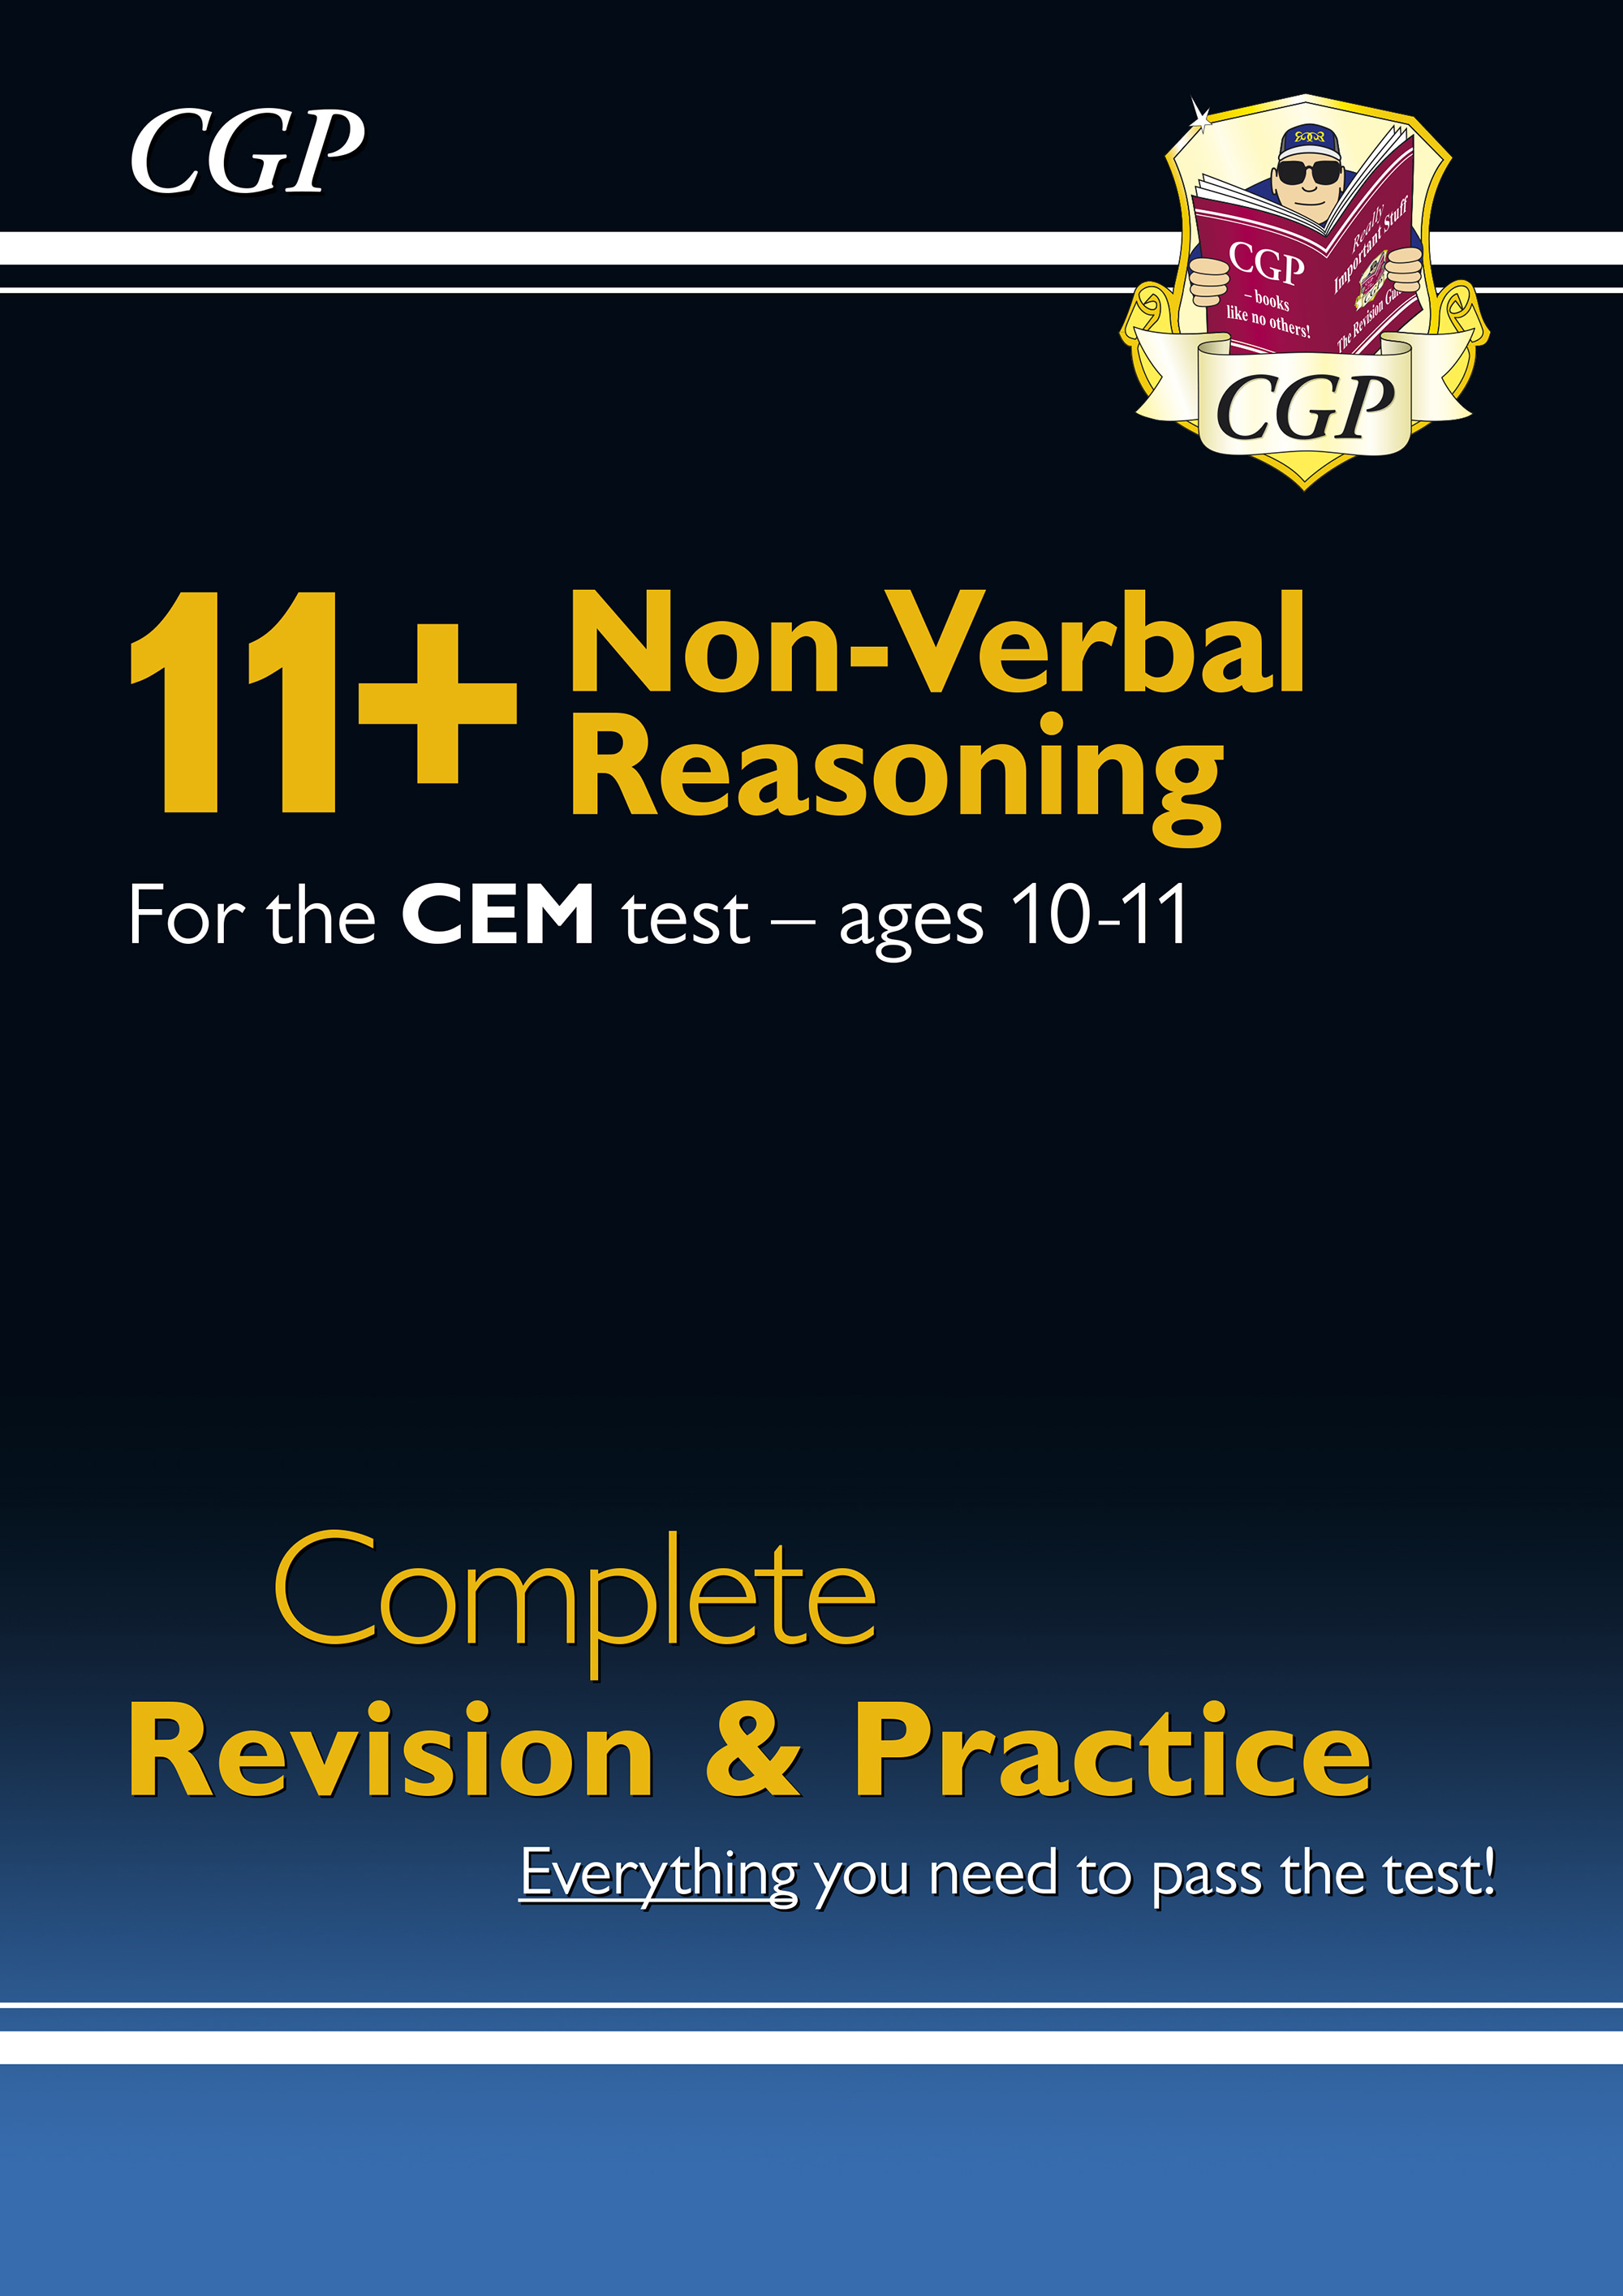 NHSDE1DK - New 11+ CEM Non-Verbal Reasoning Complete Revision and Practice - Ages 10-11